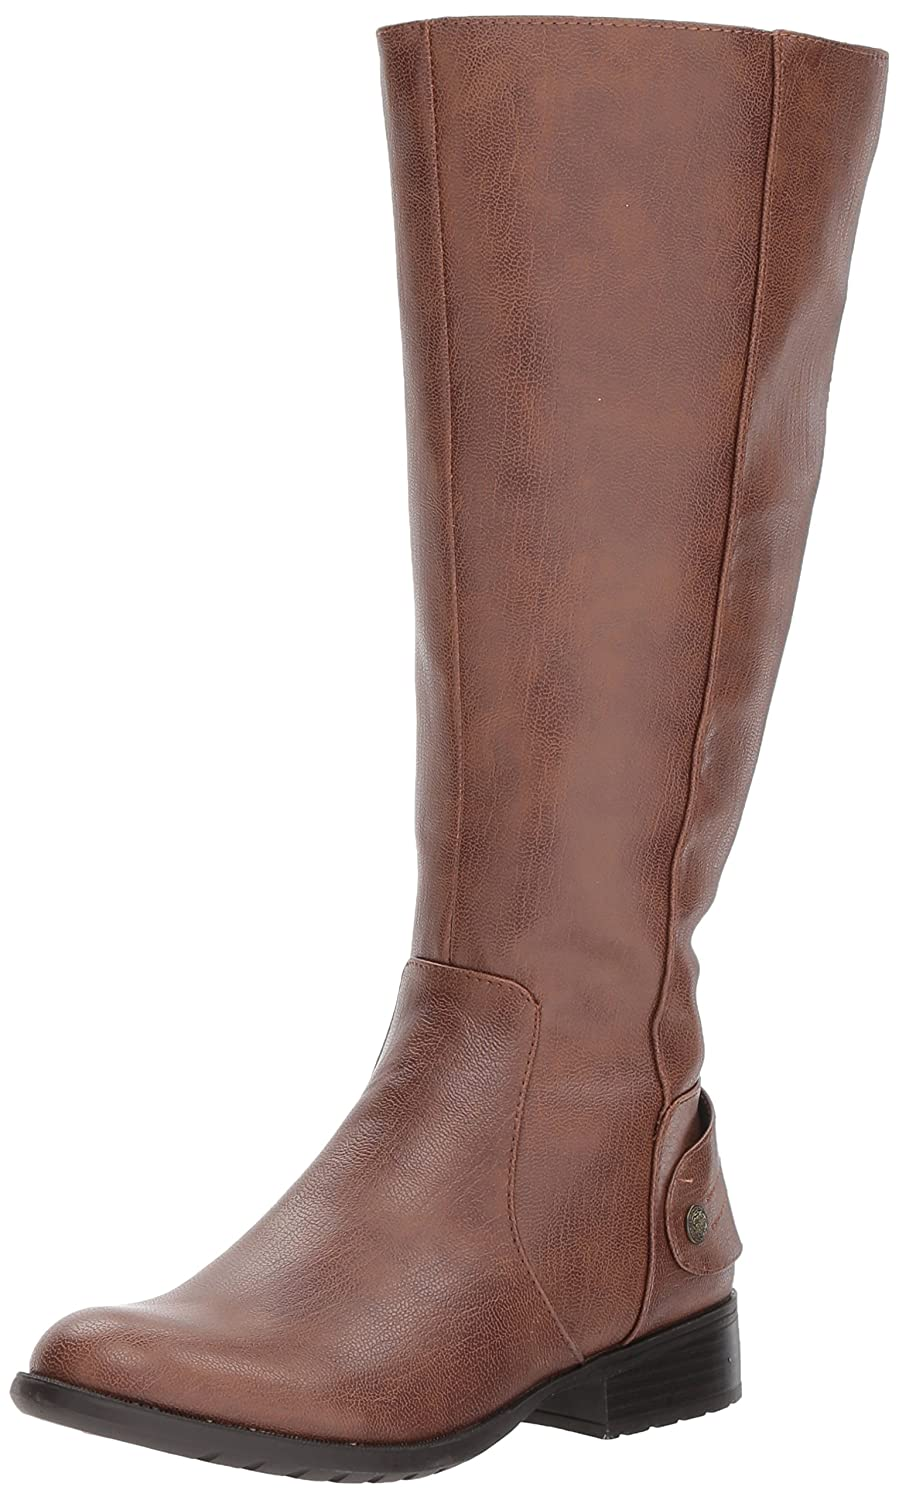 LifeStride Women's Xandywc Equestrian Boot B075FCKPS2 11 W US|Dark Tan Wc